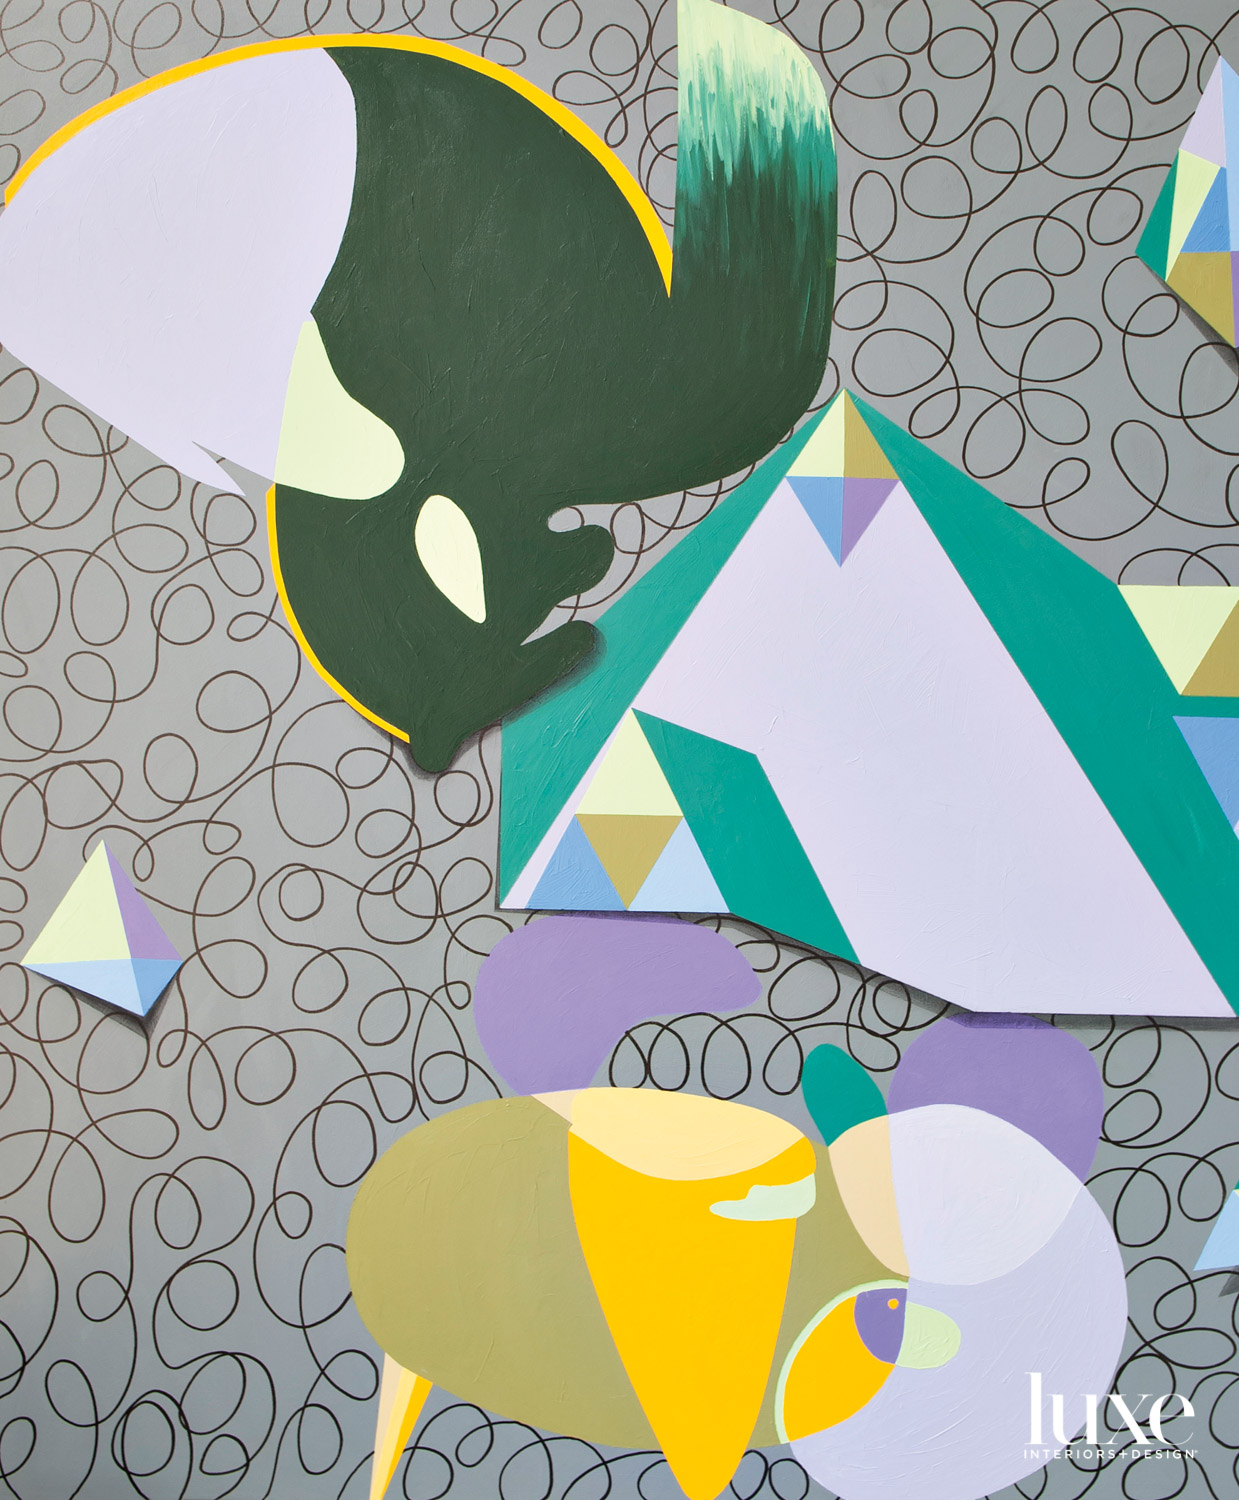 A painting with shapes in yellow, purple, blue and teal, on a gray background with curved lines.